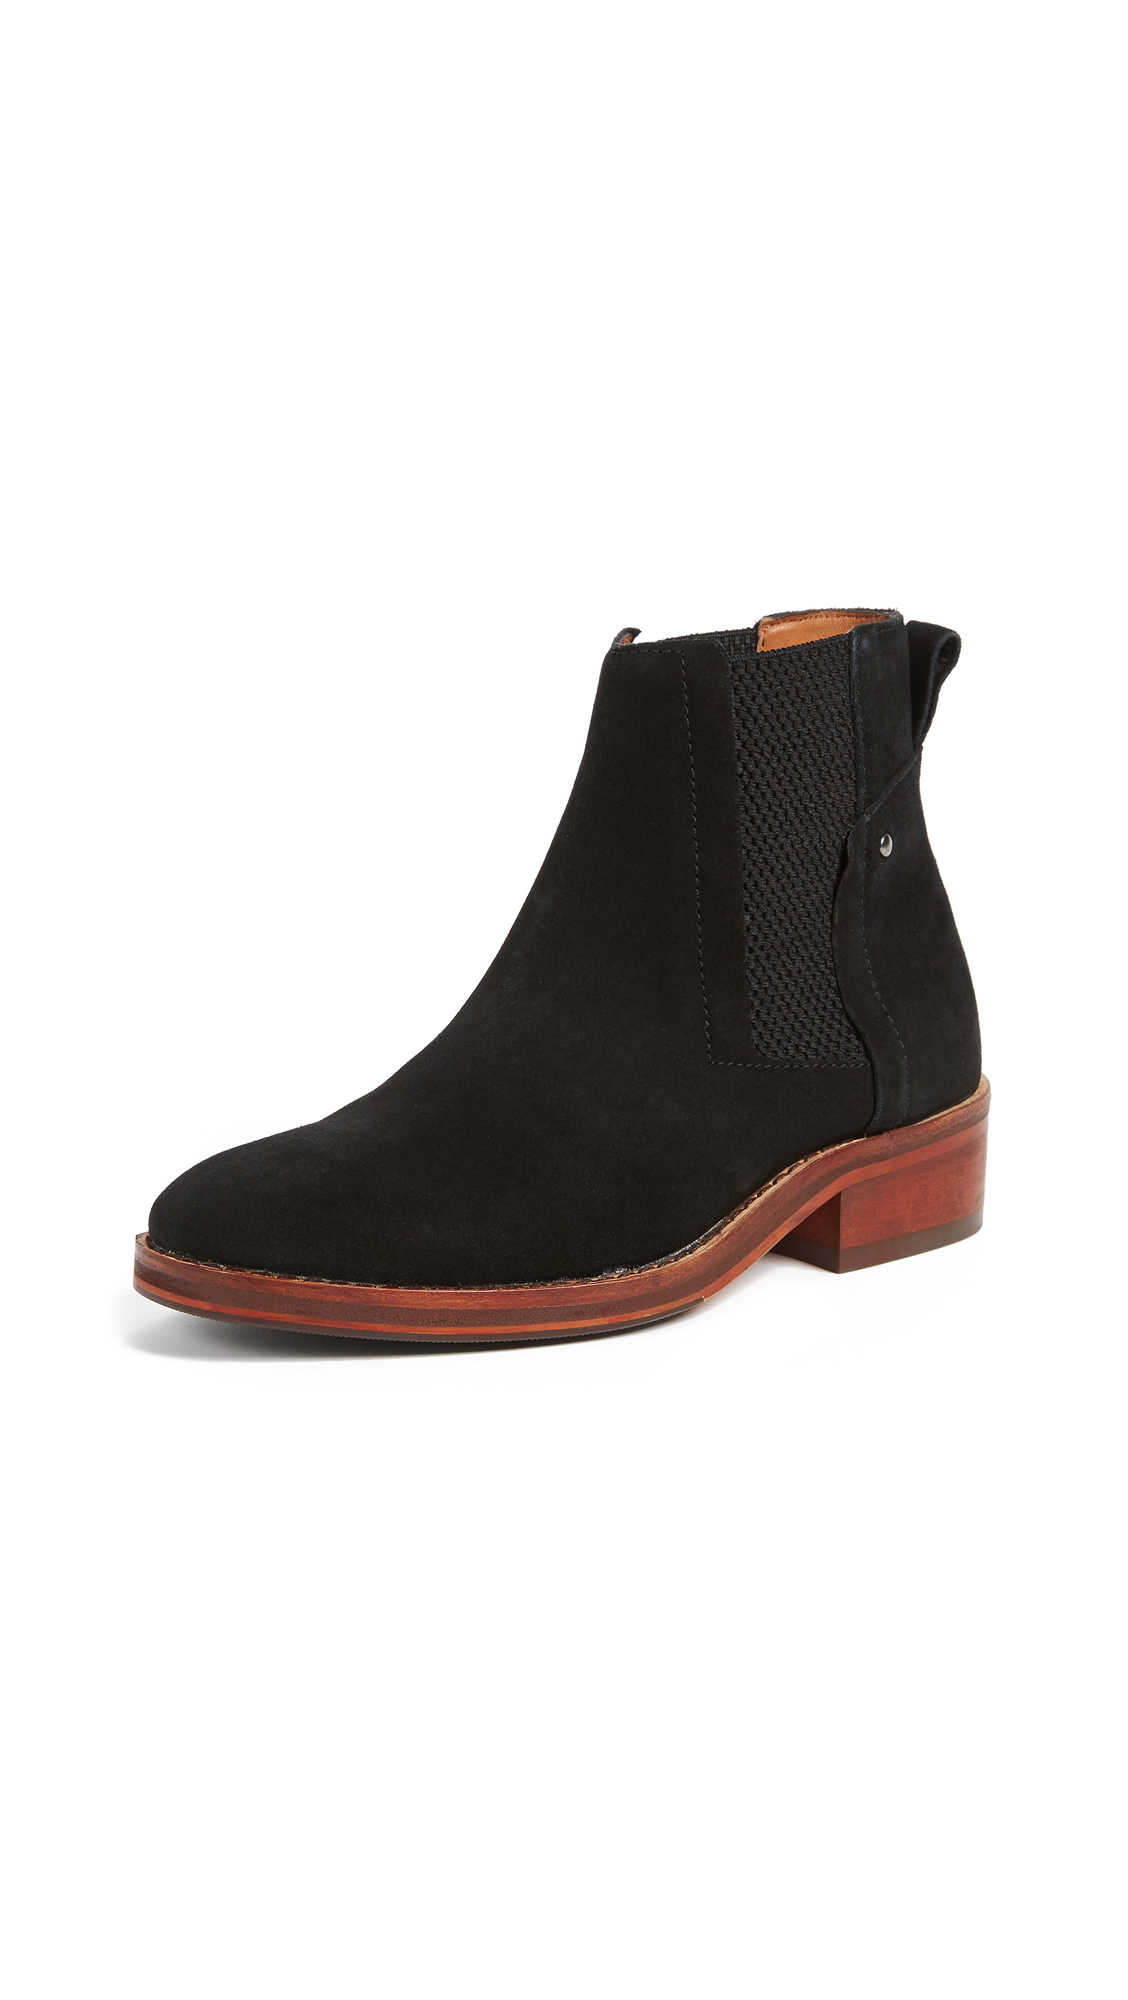 Hudson London Rodney Chelsea Booties - Black